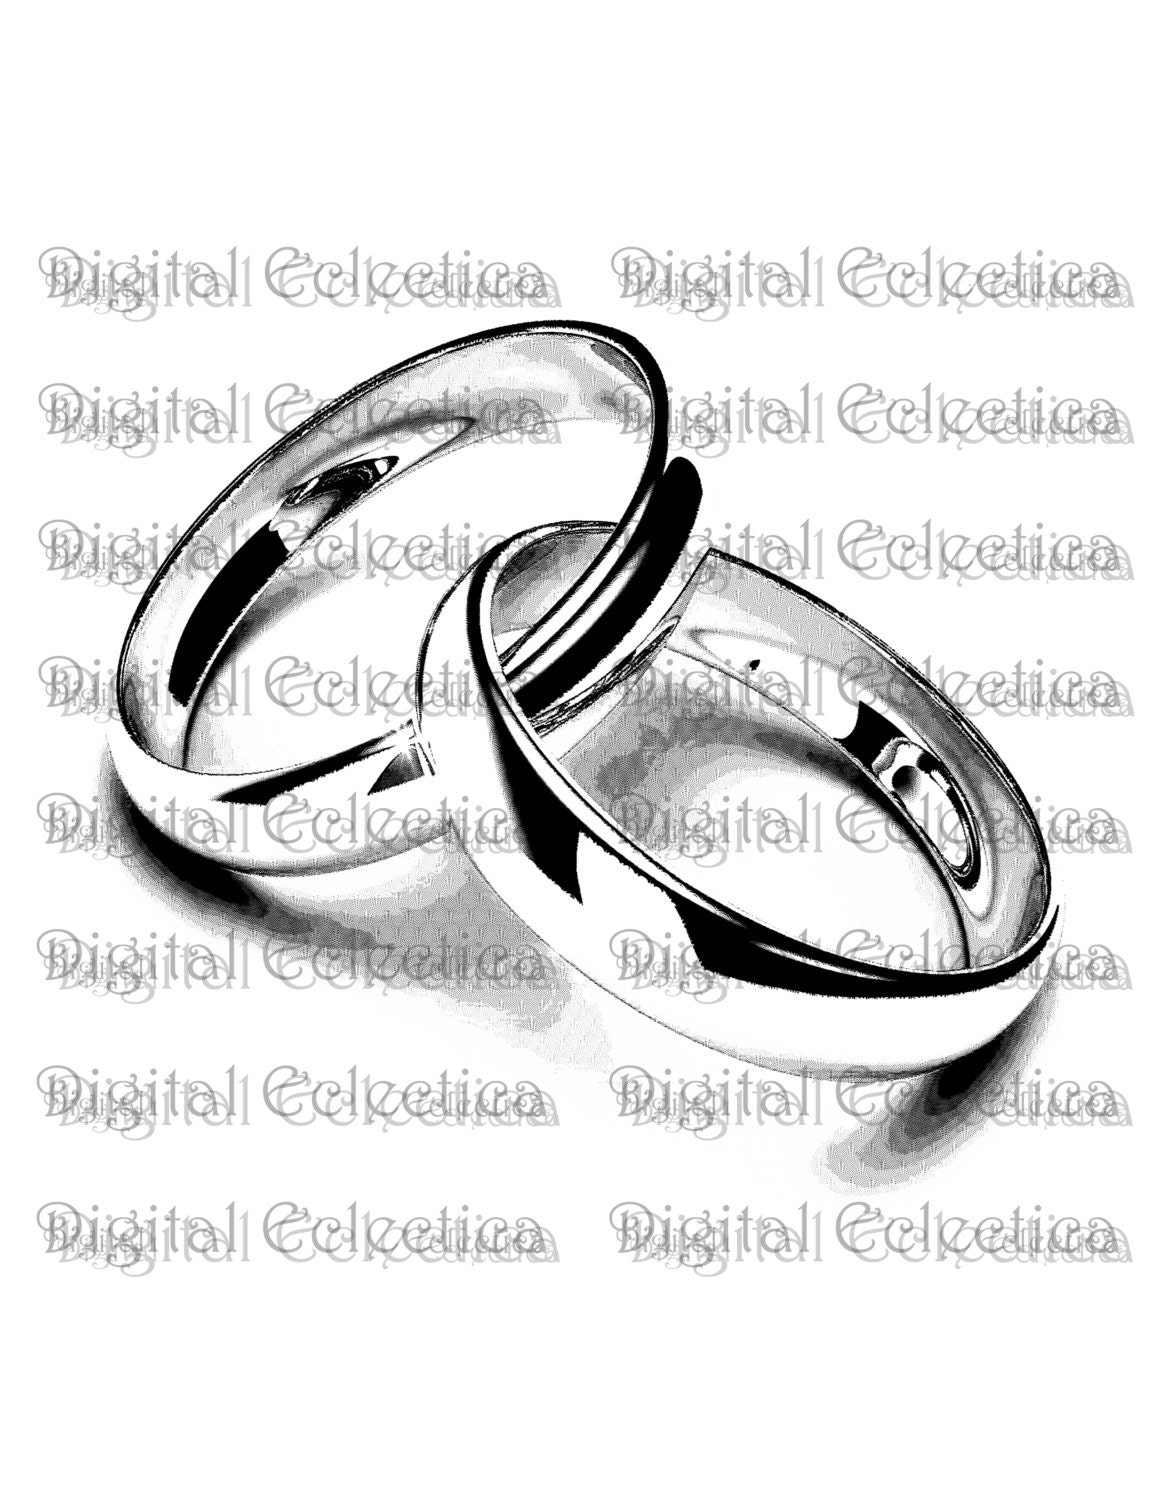 wedding rings transparent image wedding rings png wedding bands png wedding ring images - Wedding Rings Clipart